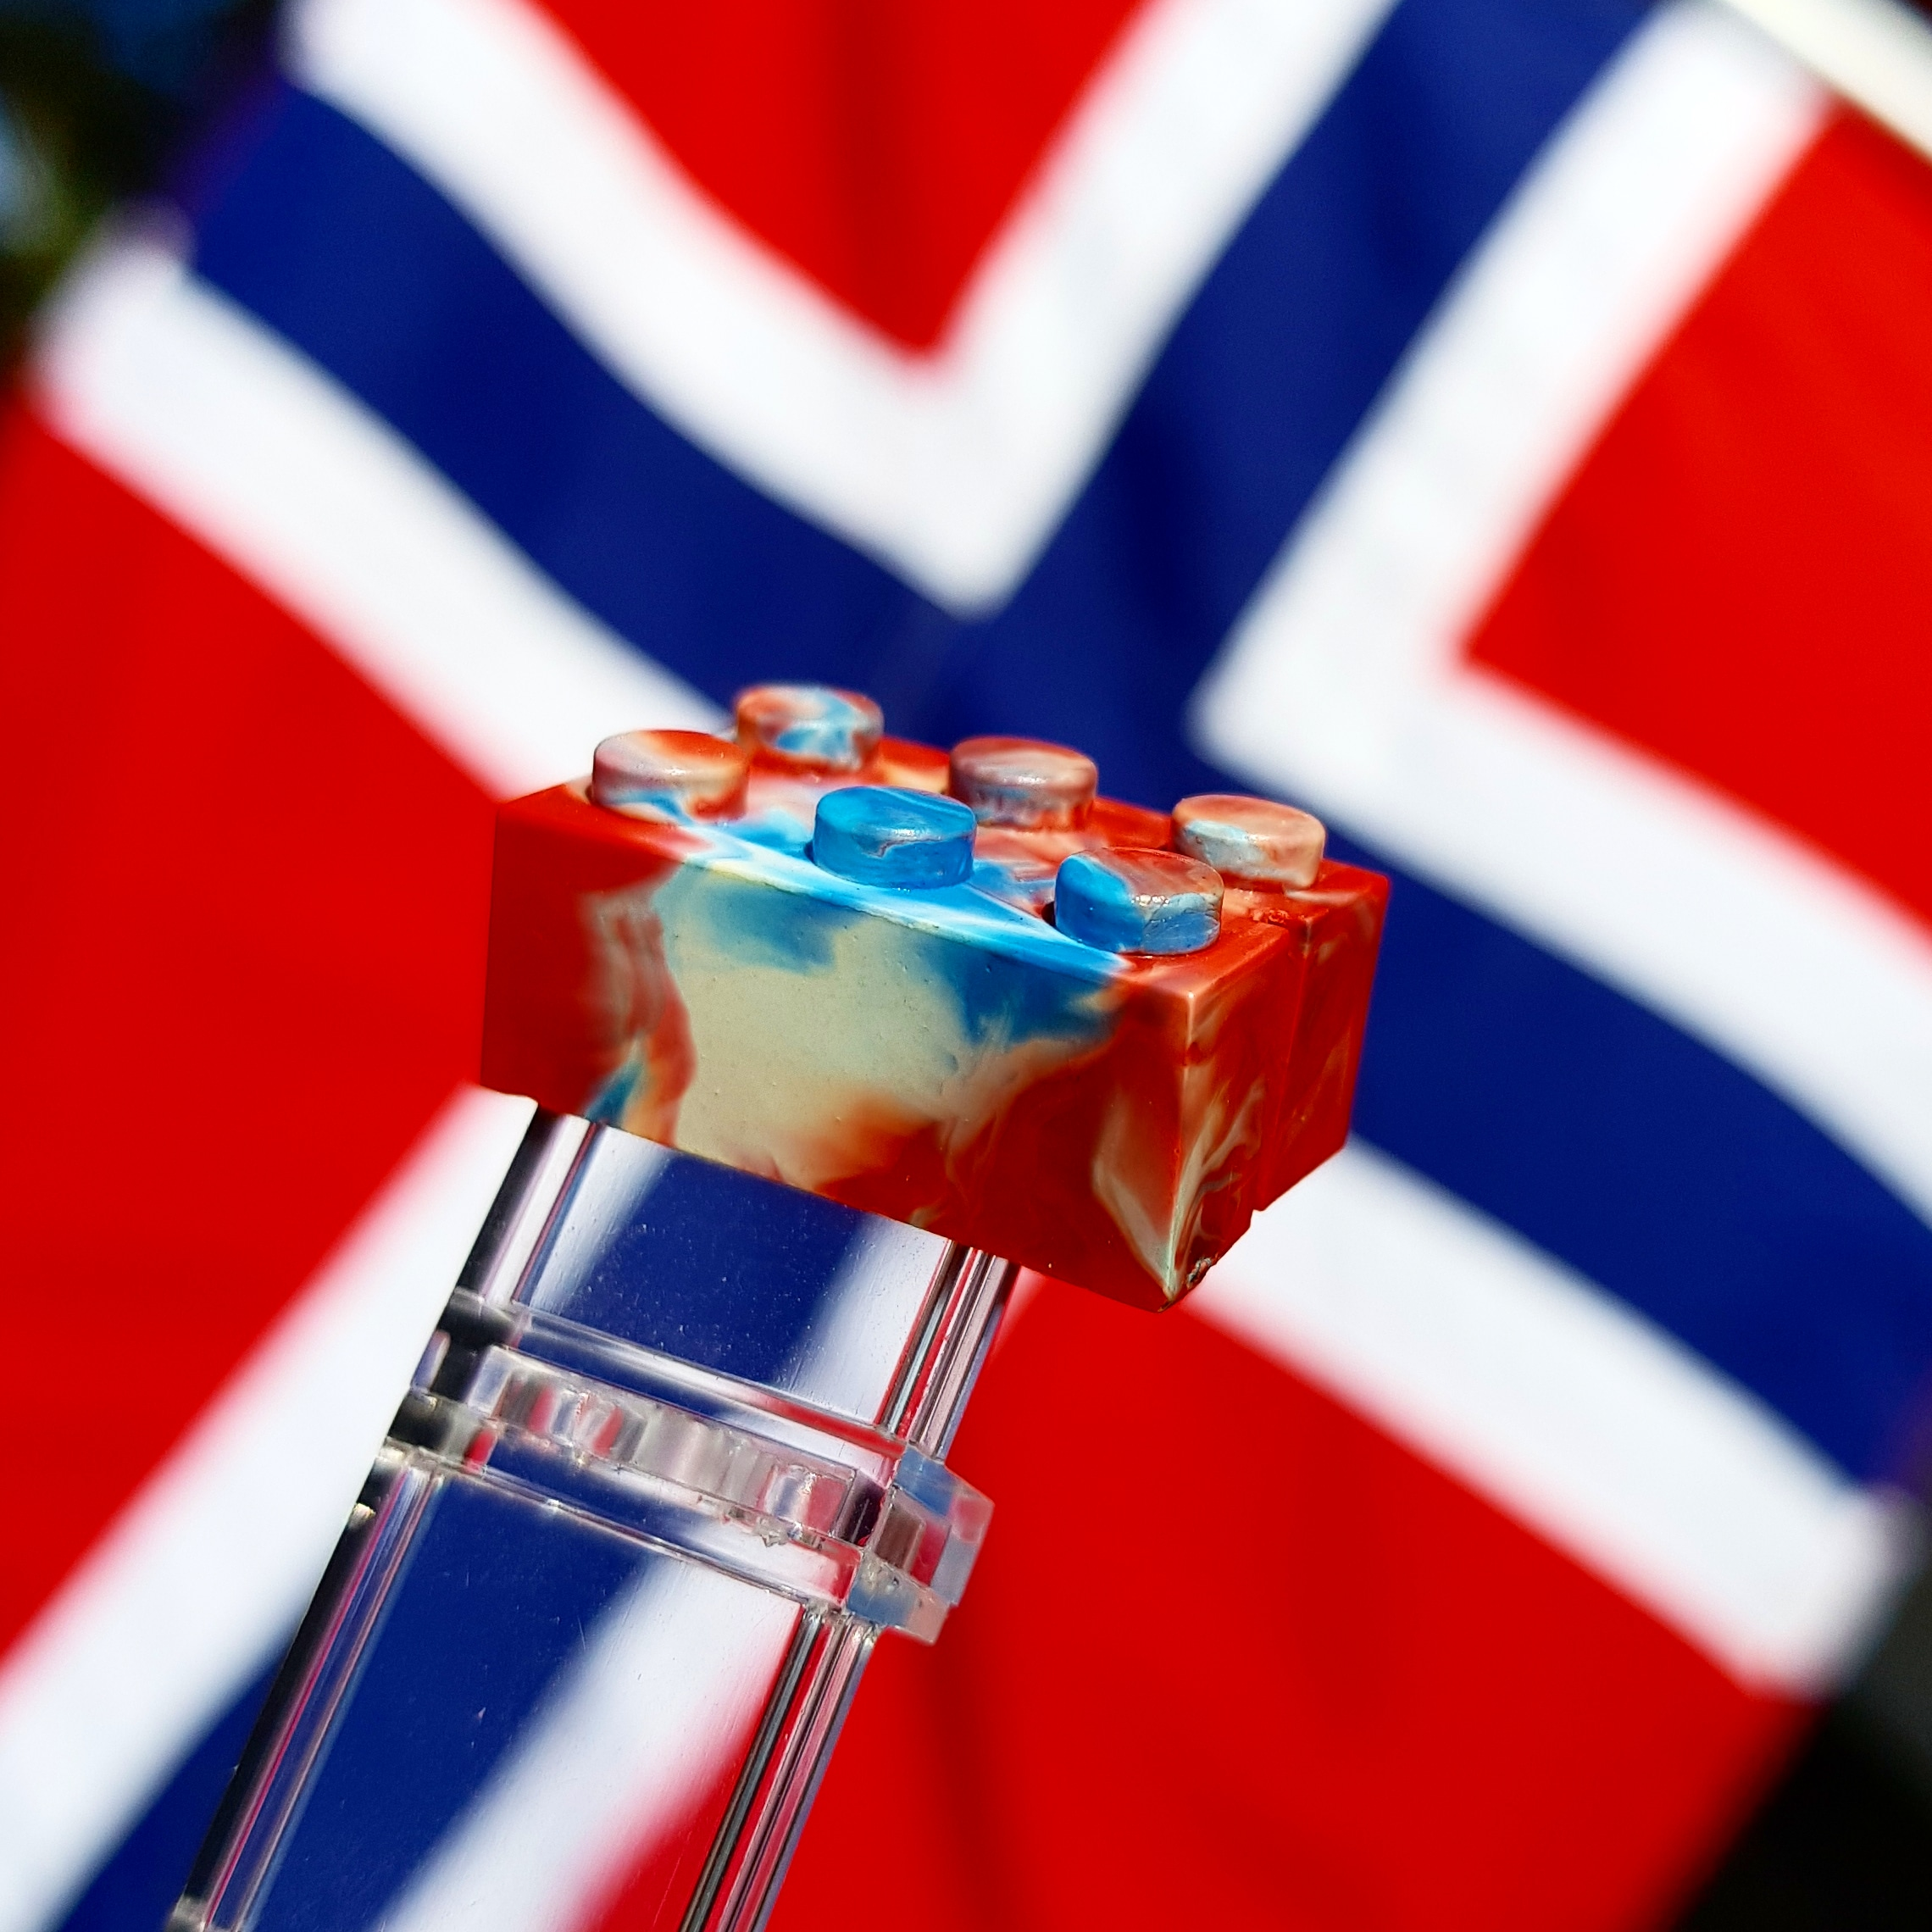 Norway's national day, 17th of May! :)